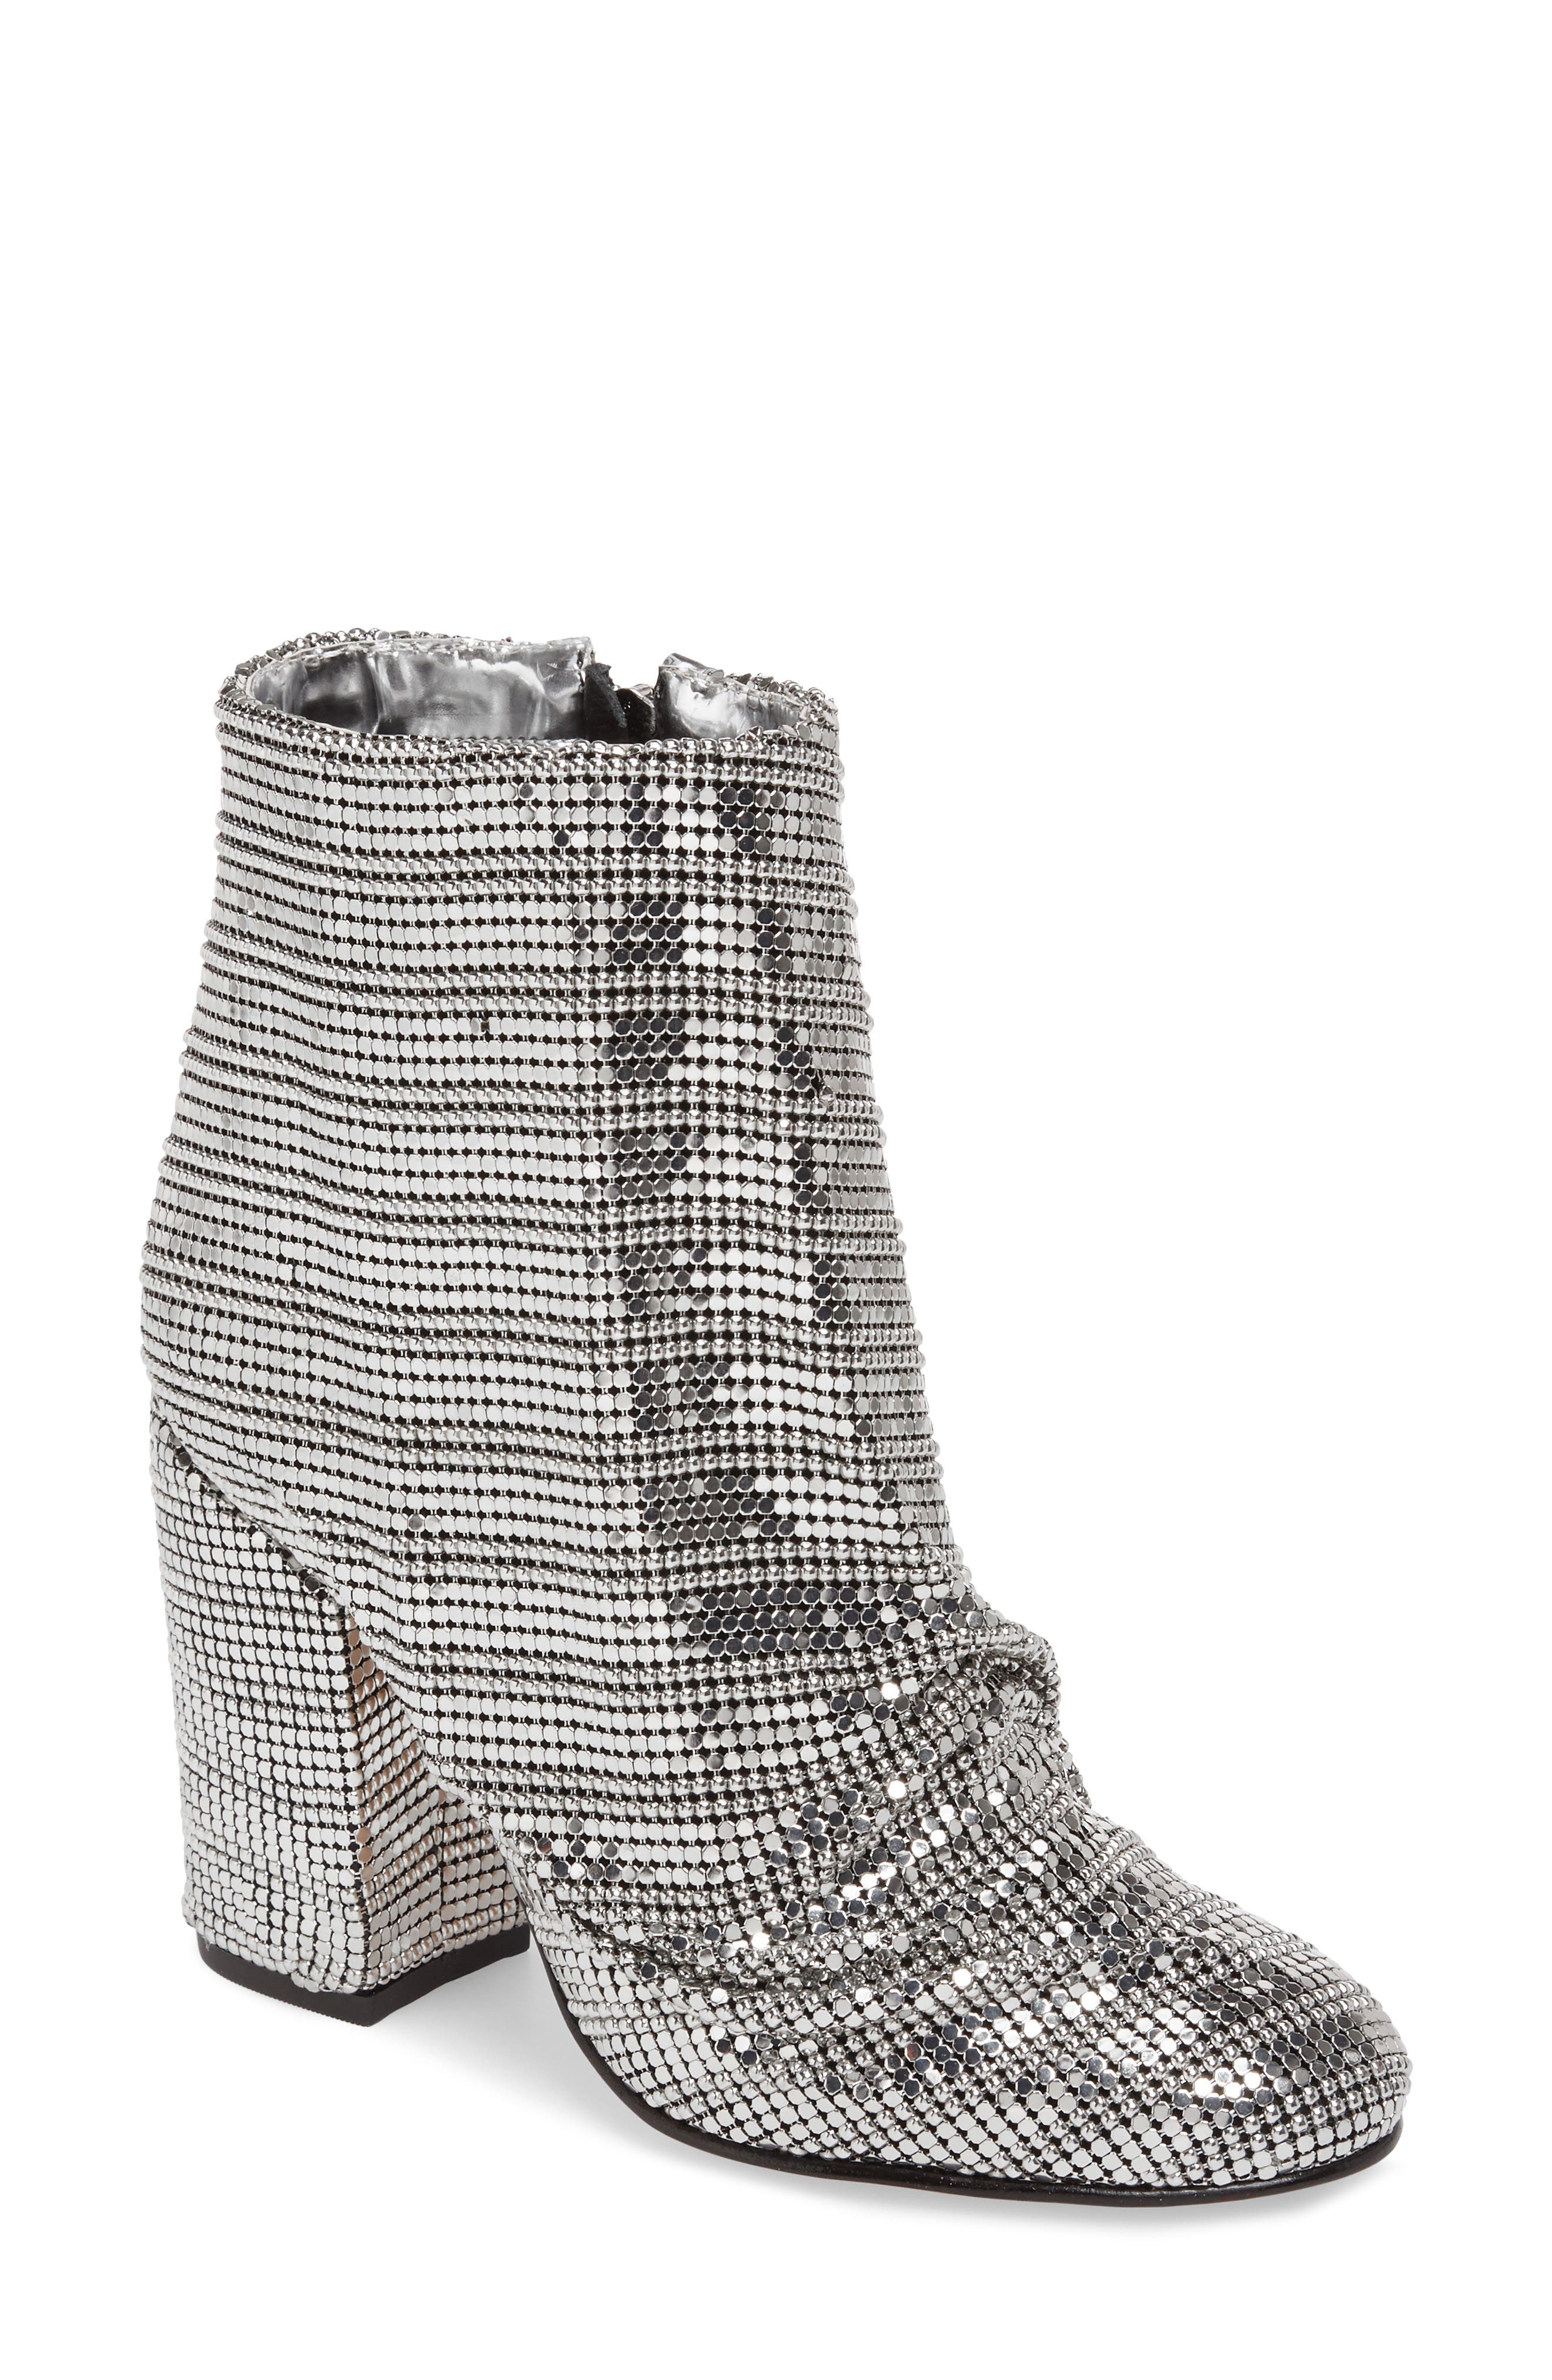 Taise Ruched Mirror Mesh Bootie,                         Main,                         color, 100